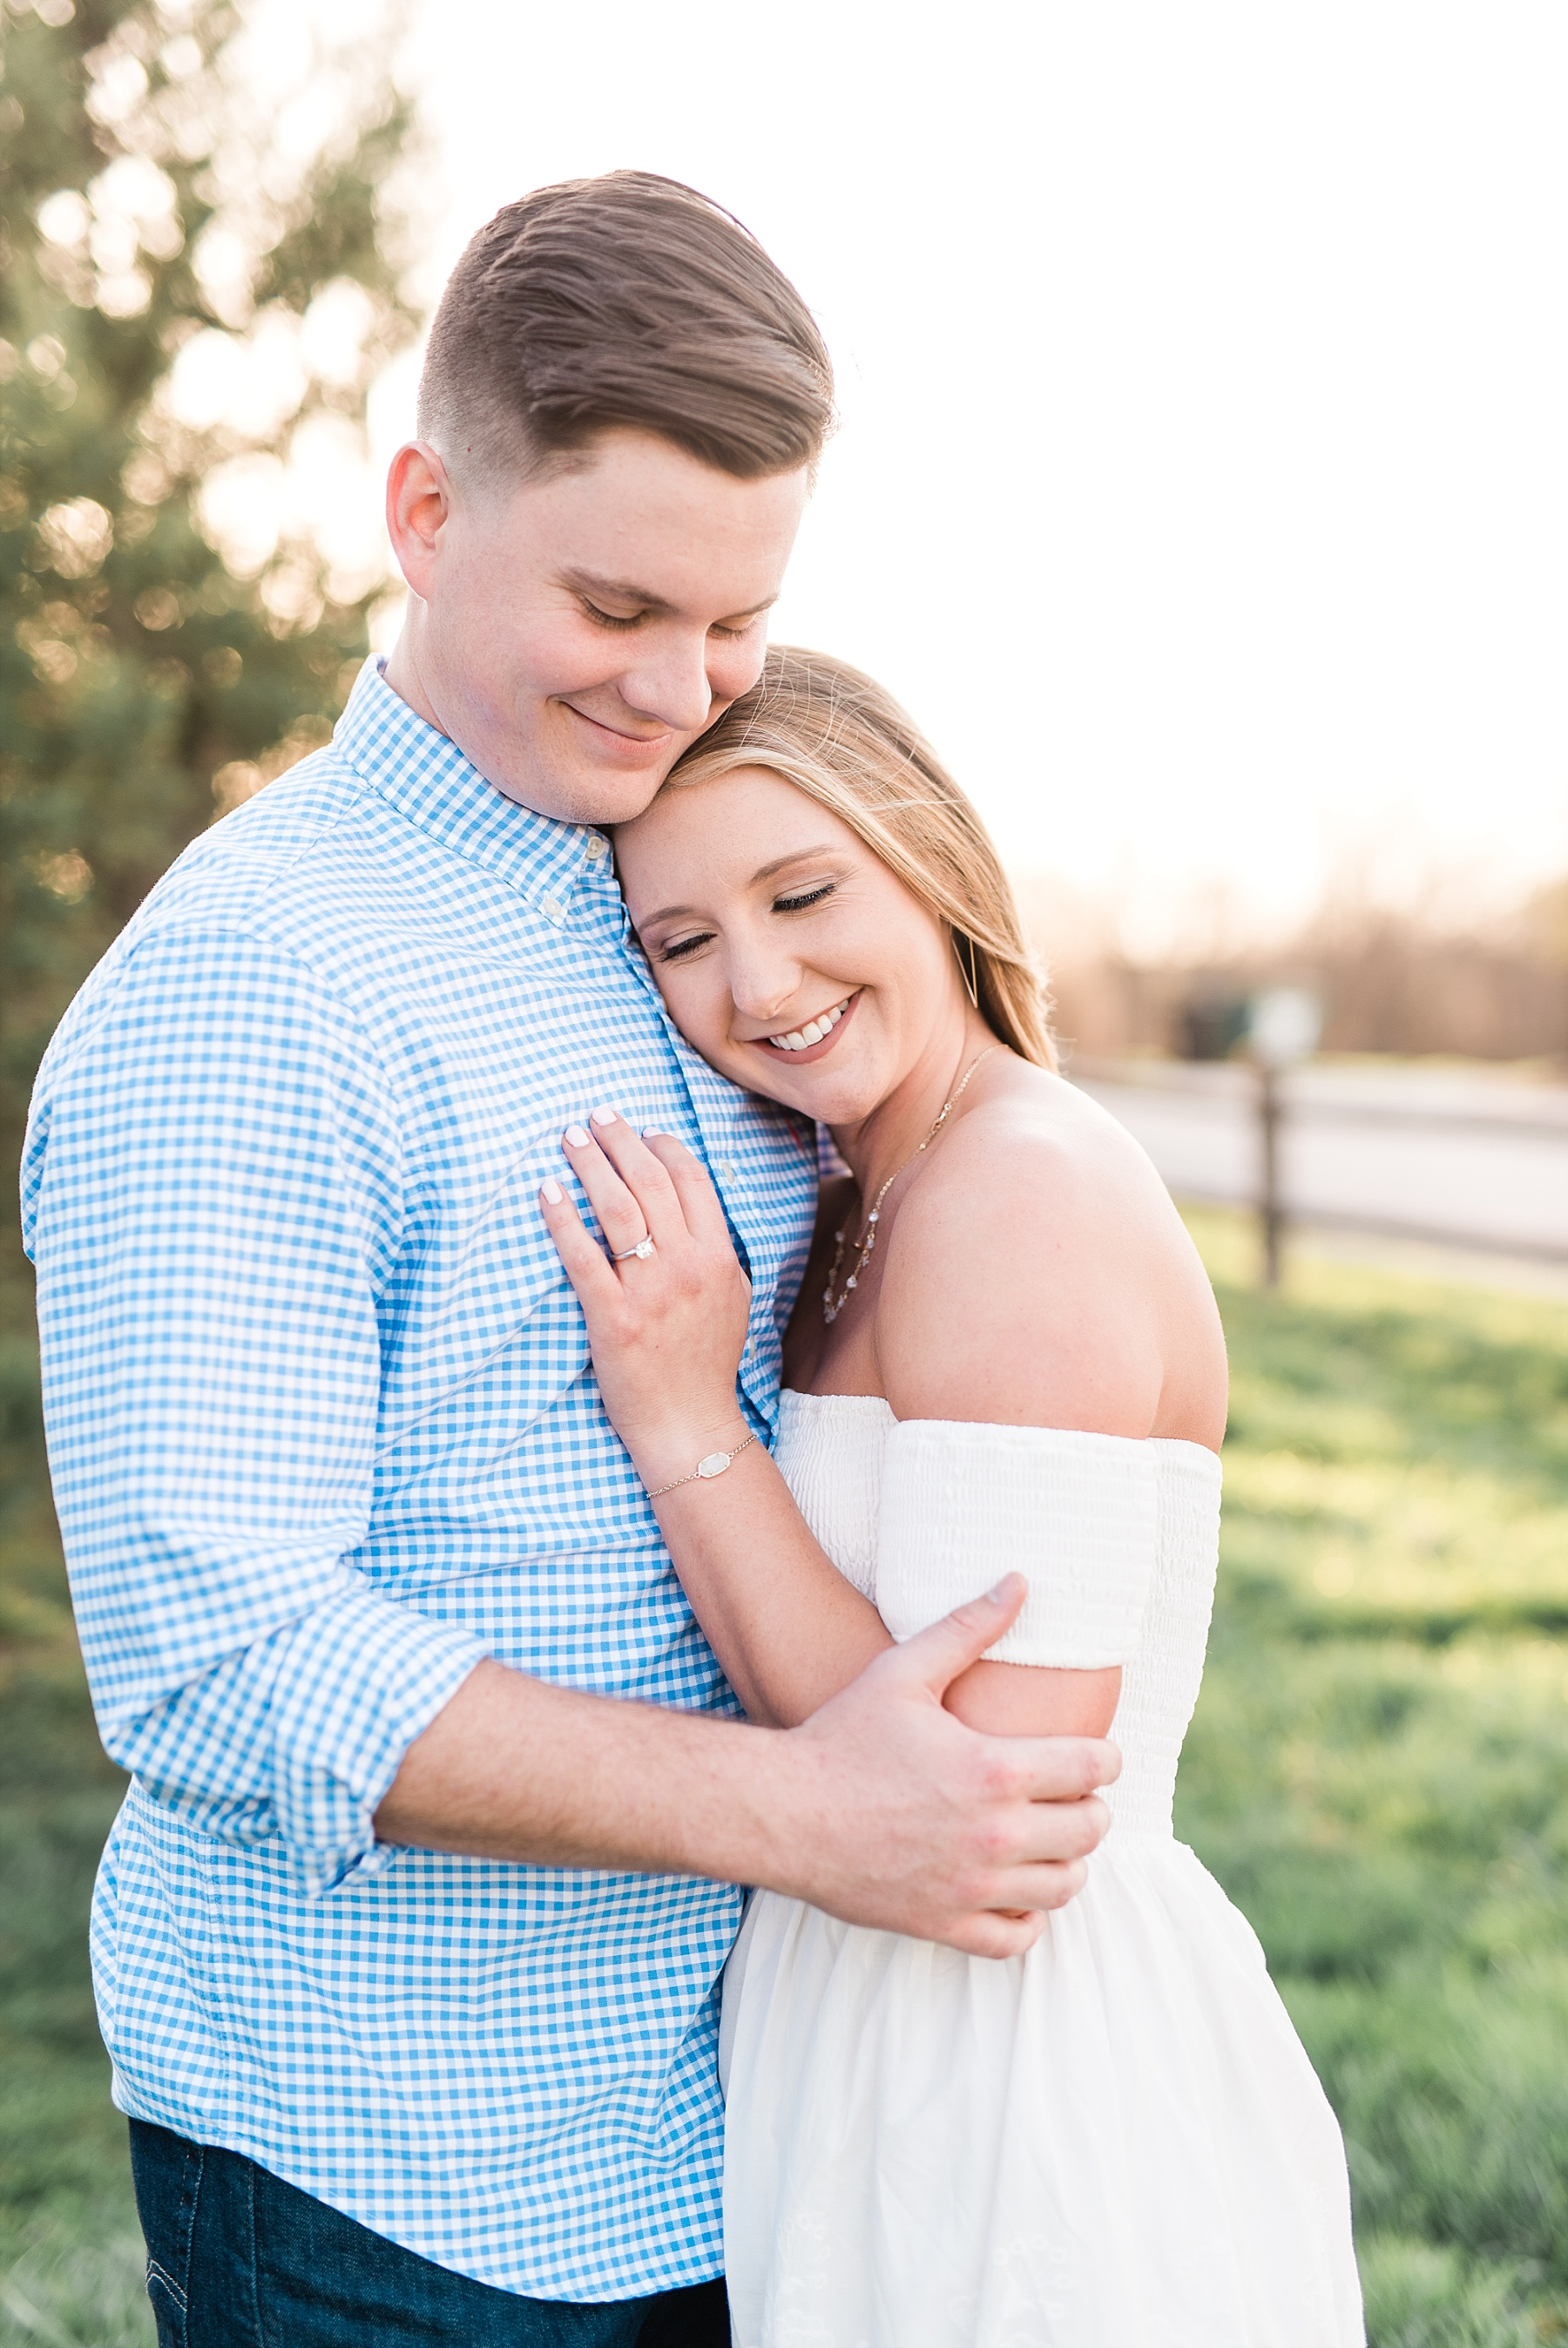 Spring Sunset Engagement Session with High School Sweethearts and Golden Retriever Puppy at Blue Bell Farm Fayette Missouri by Kelsi Kliethermes Photography_0018.jpg